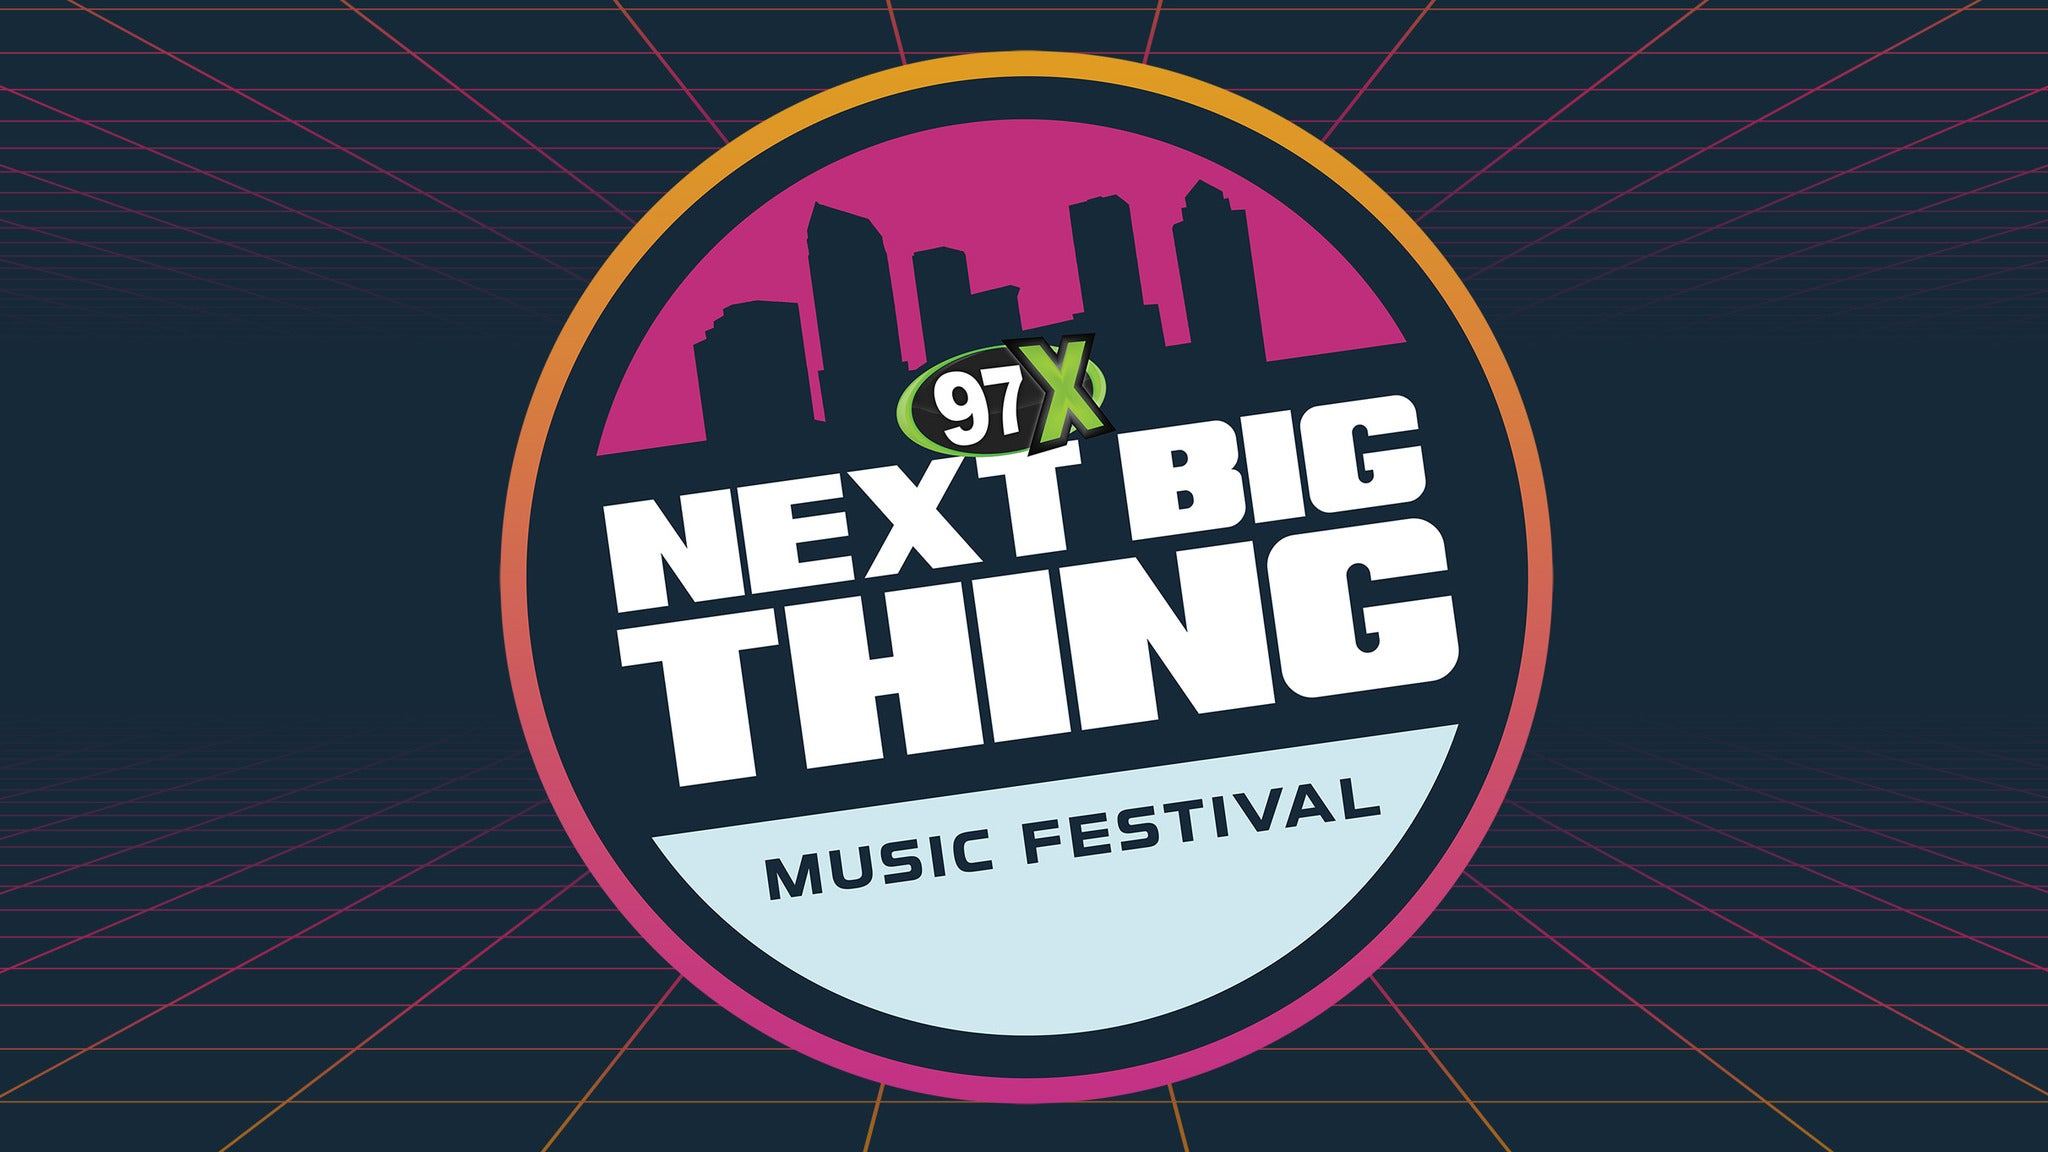 97X Next Big Thing-Day 1 SINGLE EVENT ONLY